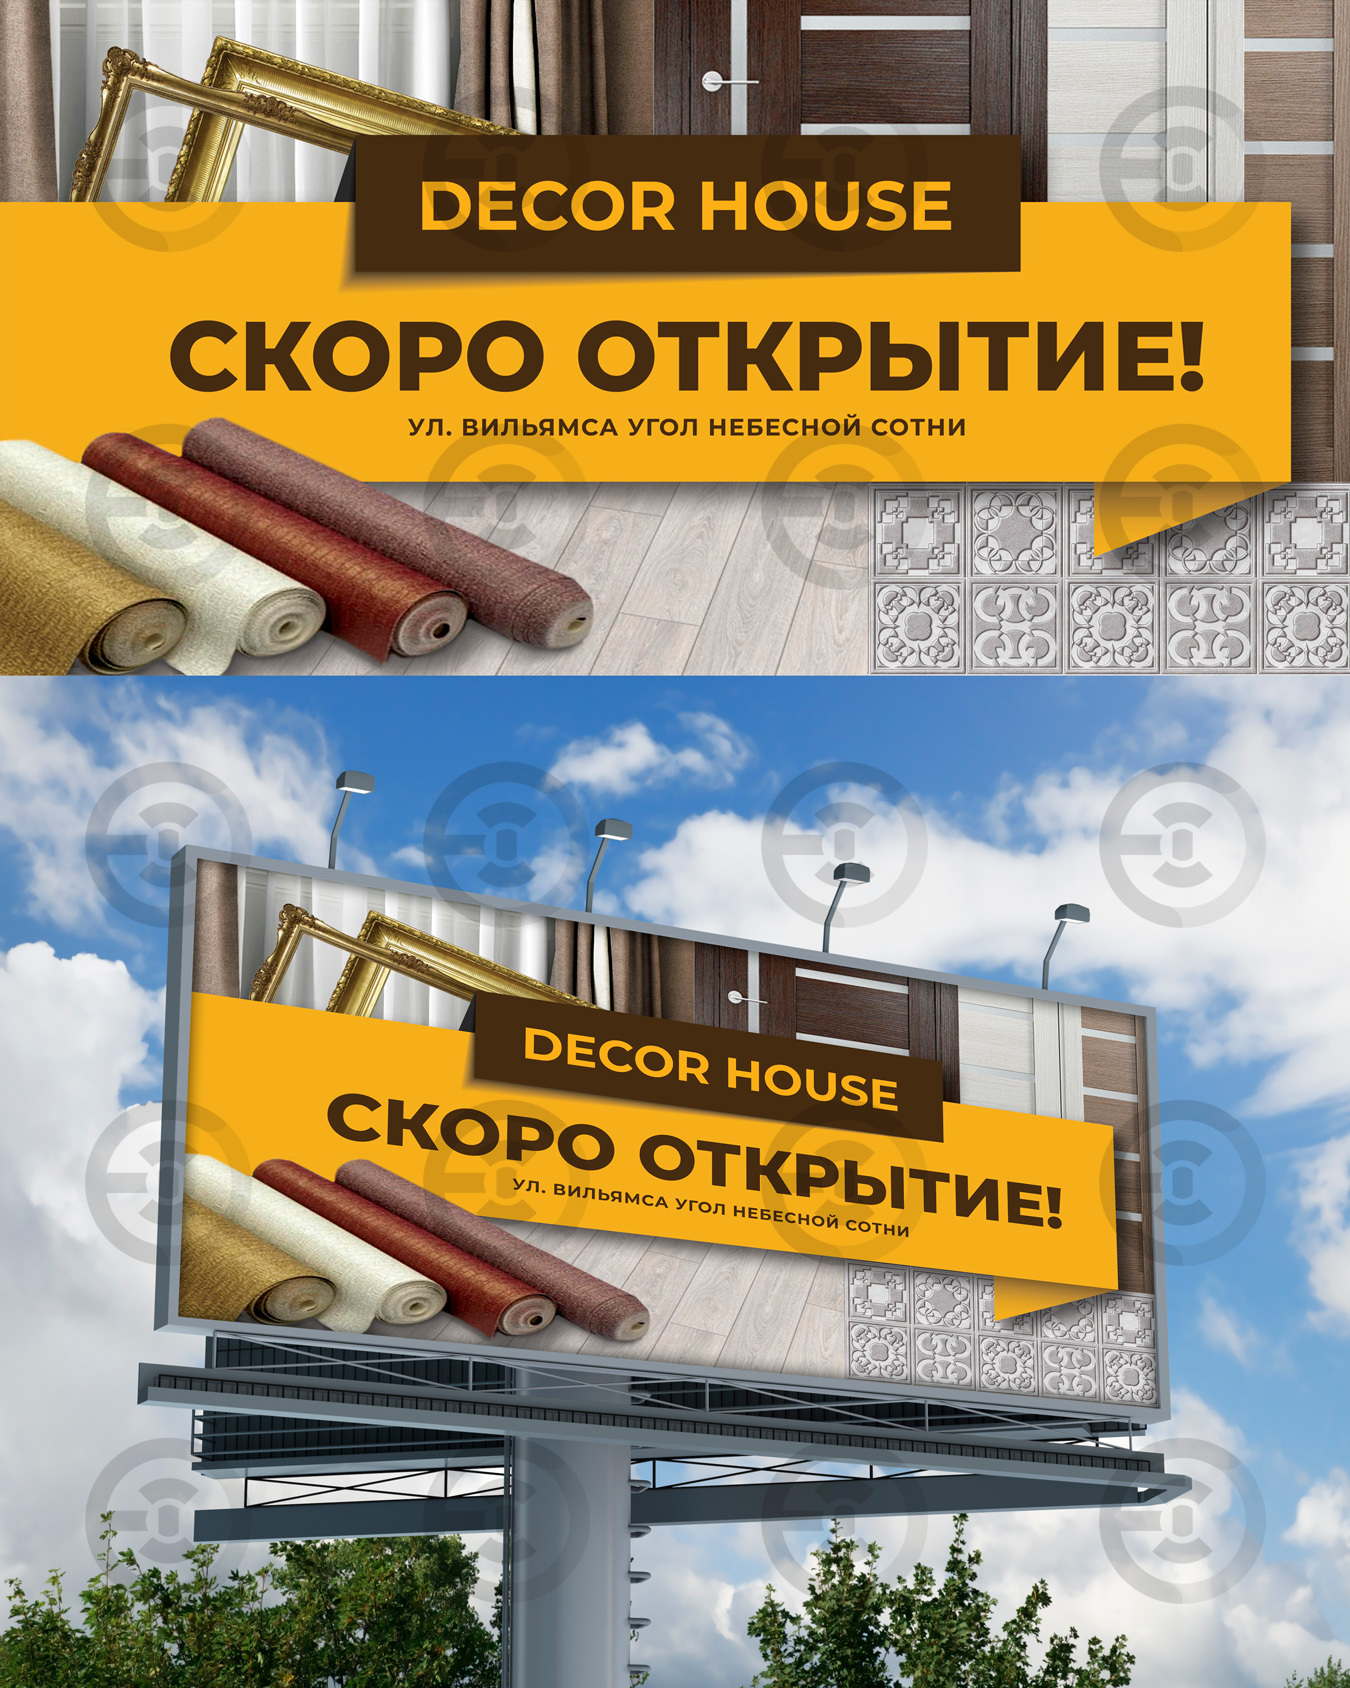 фотоприв_decor-house.jpg